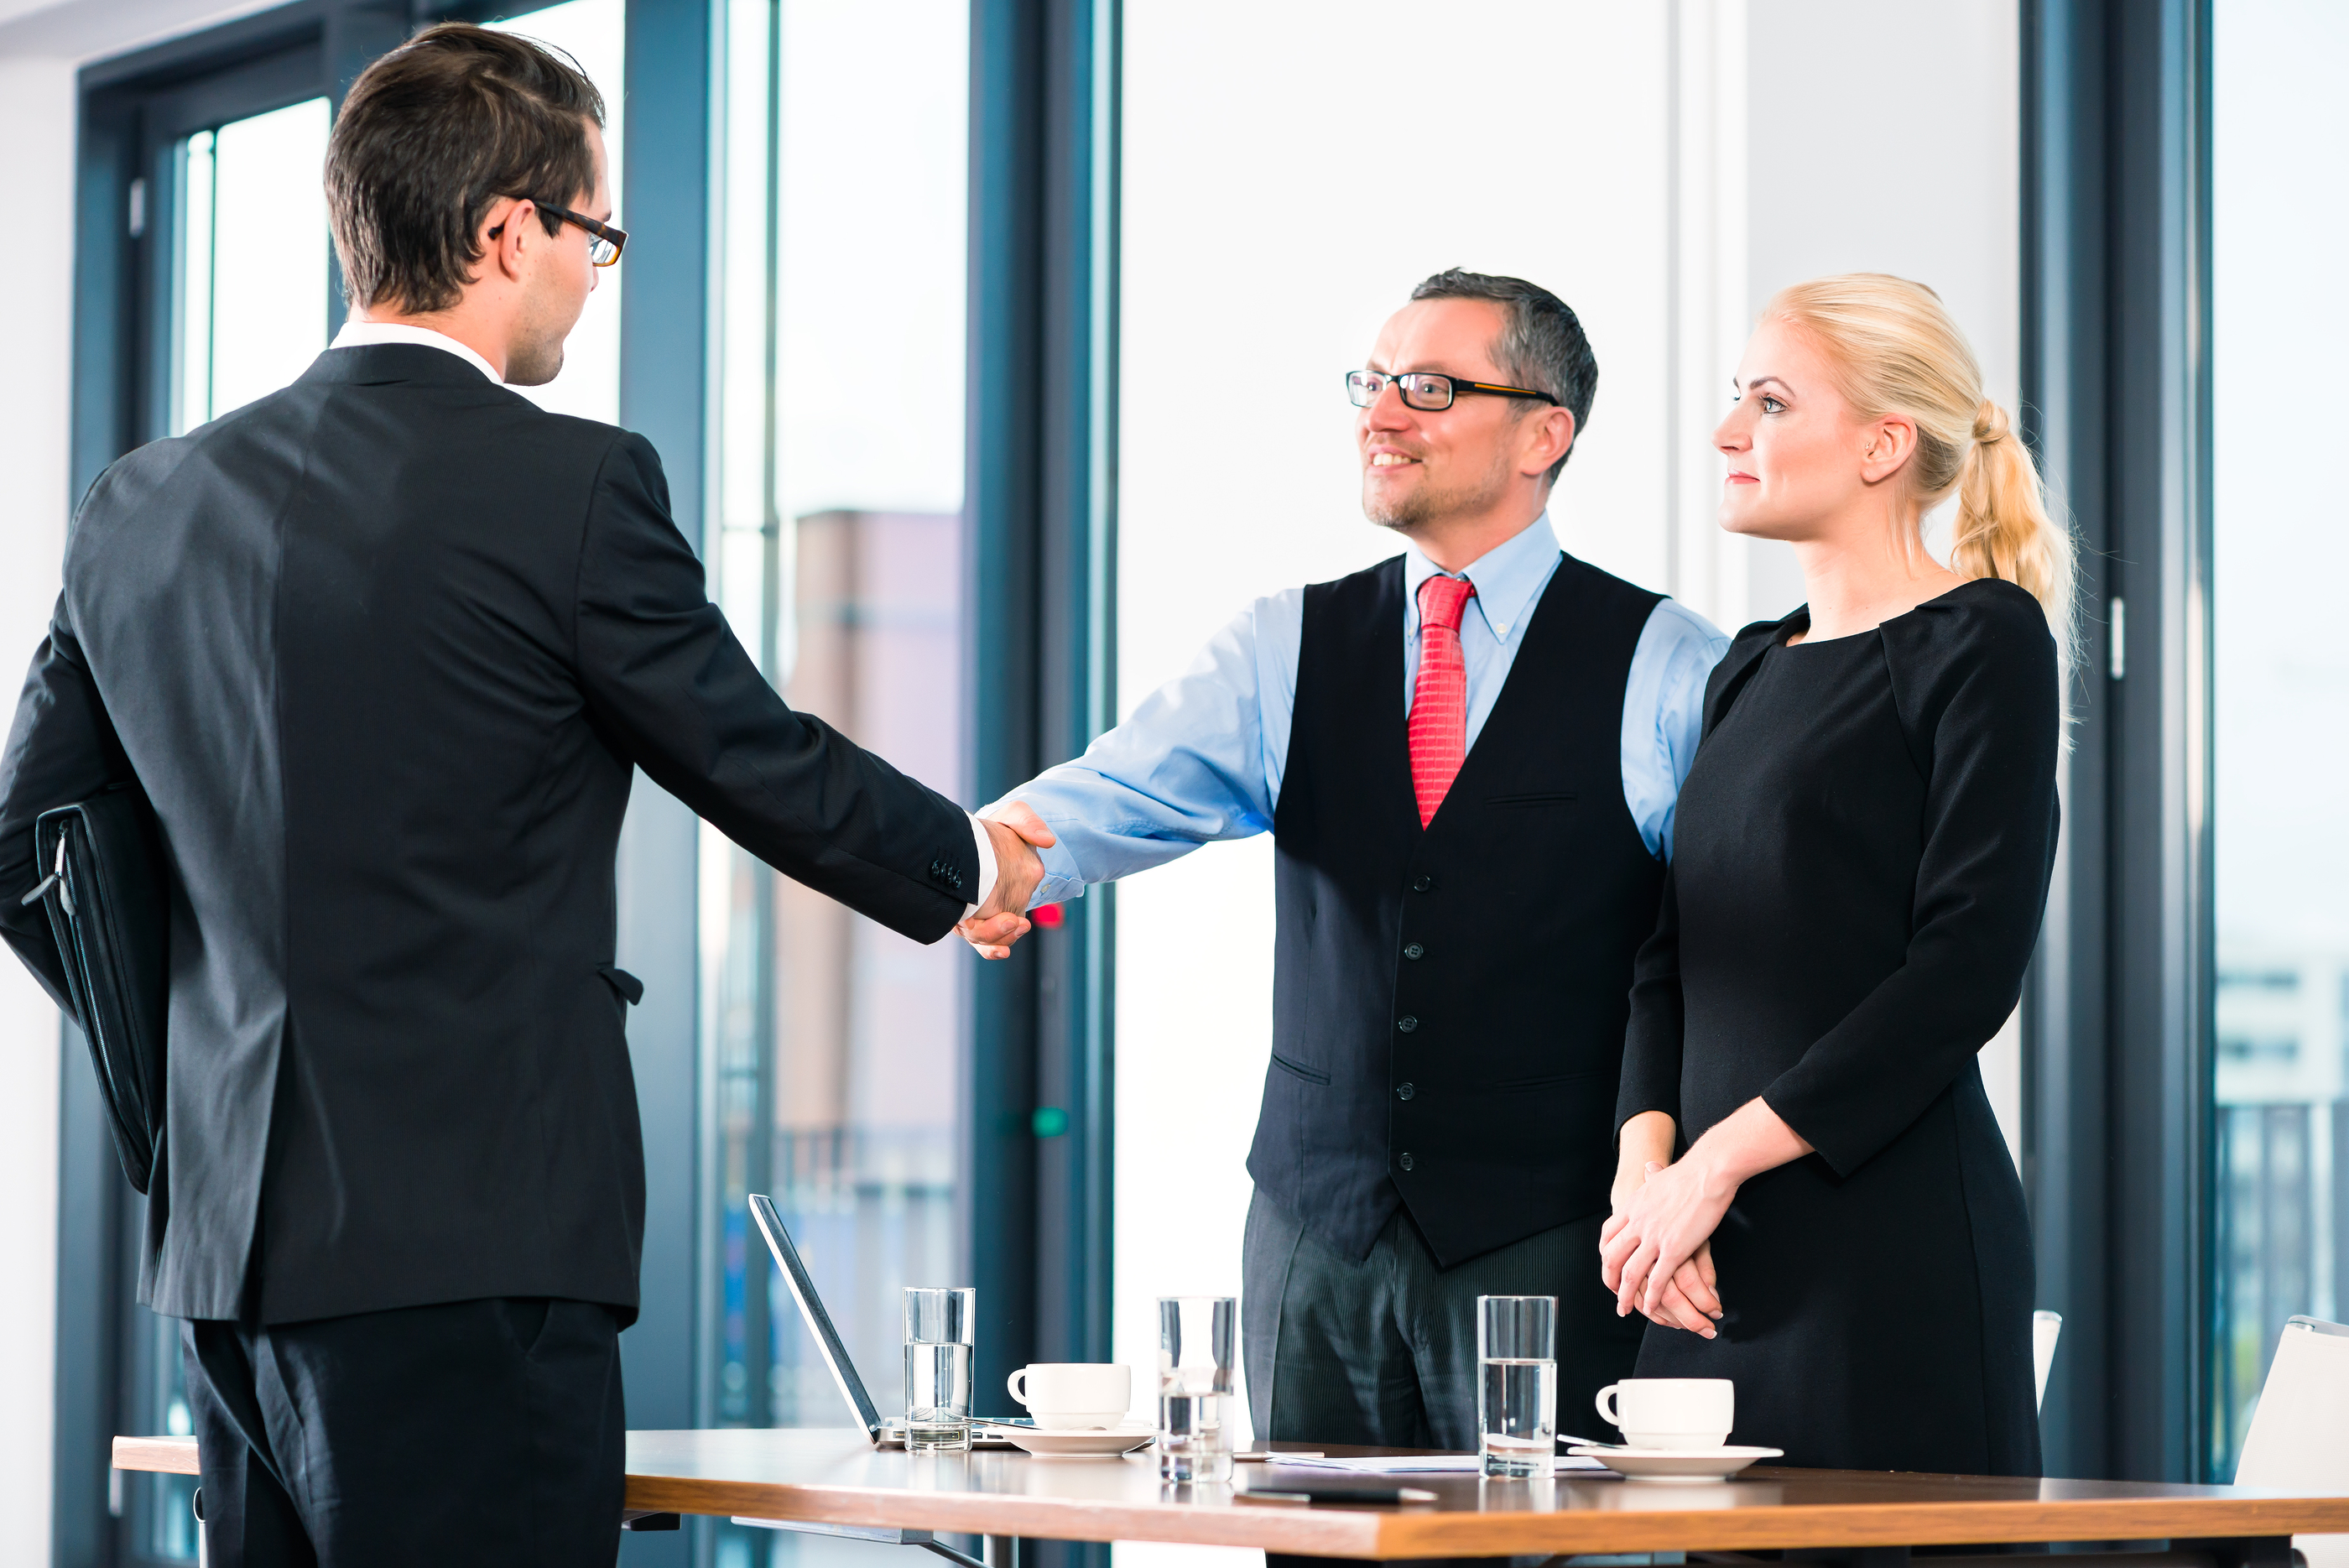 Excellent Questions to Ask at the End of Your Interview